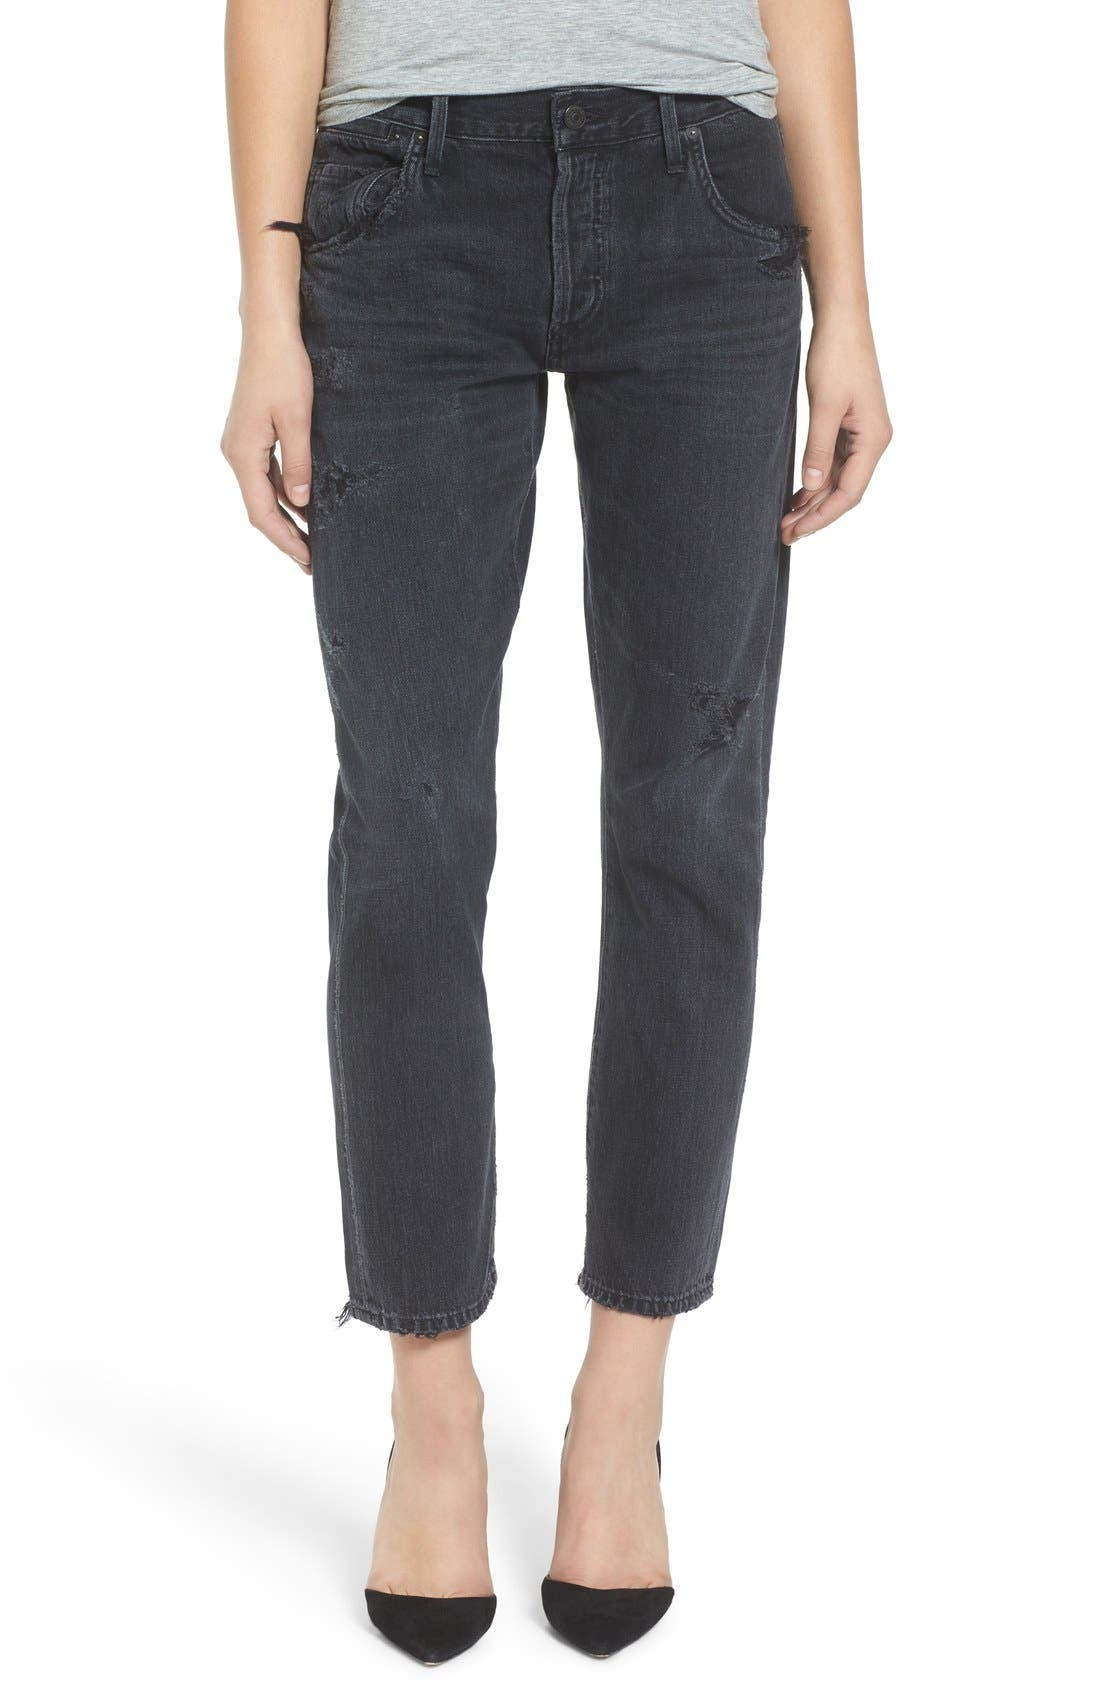 Emerson Slim Boyfriend Jeans,                             Alternate thumbnail 4, color,                             006